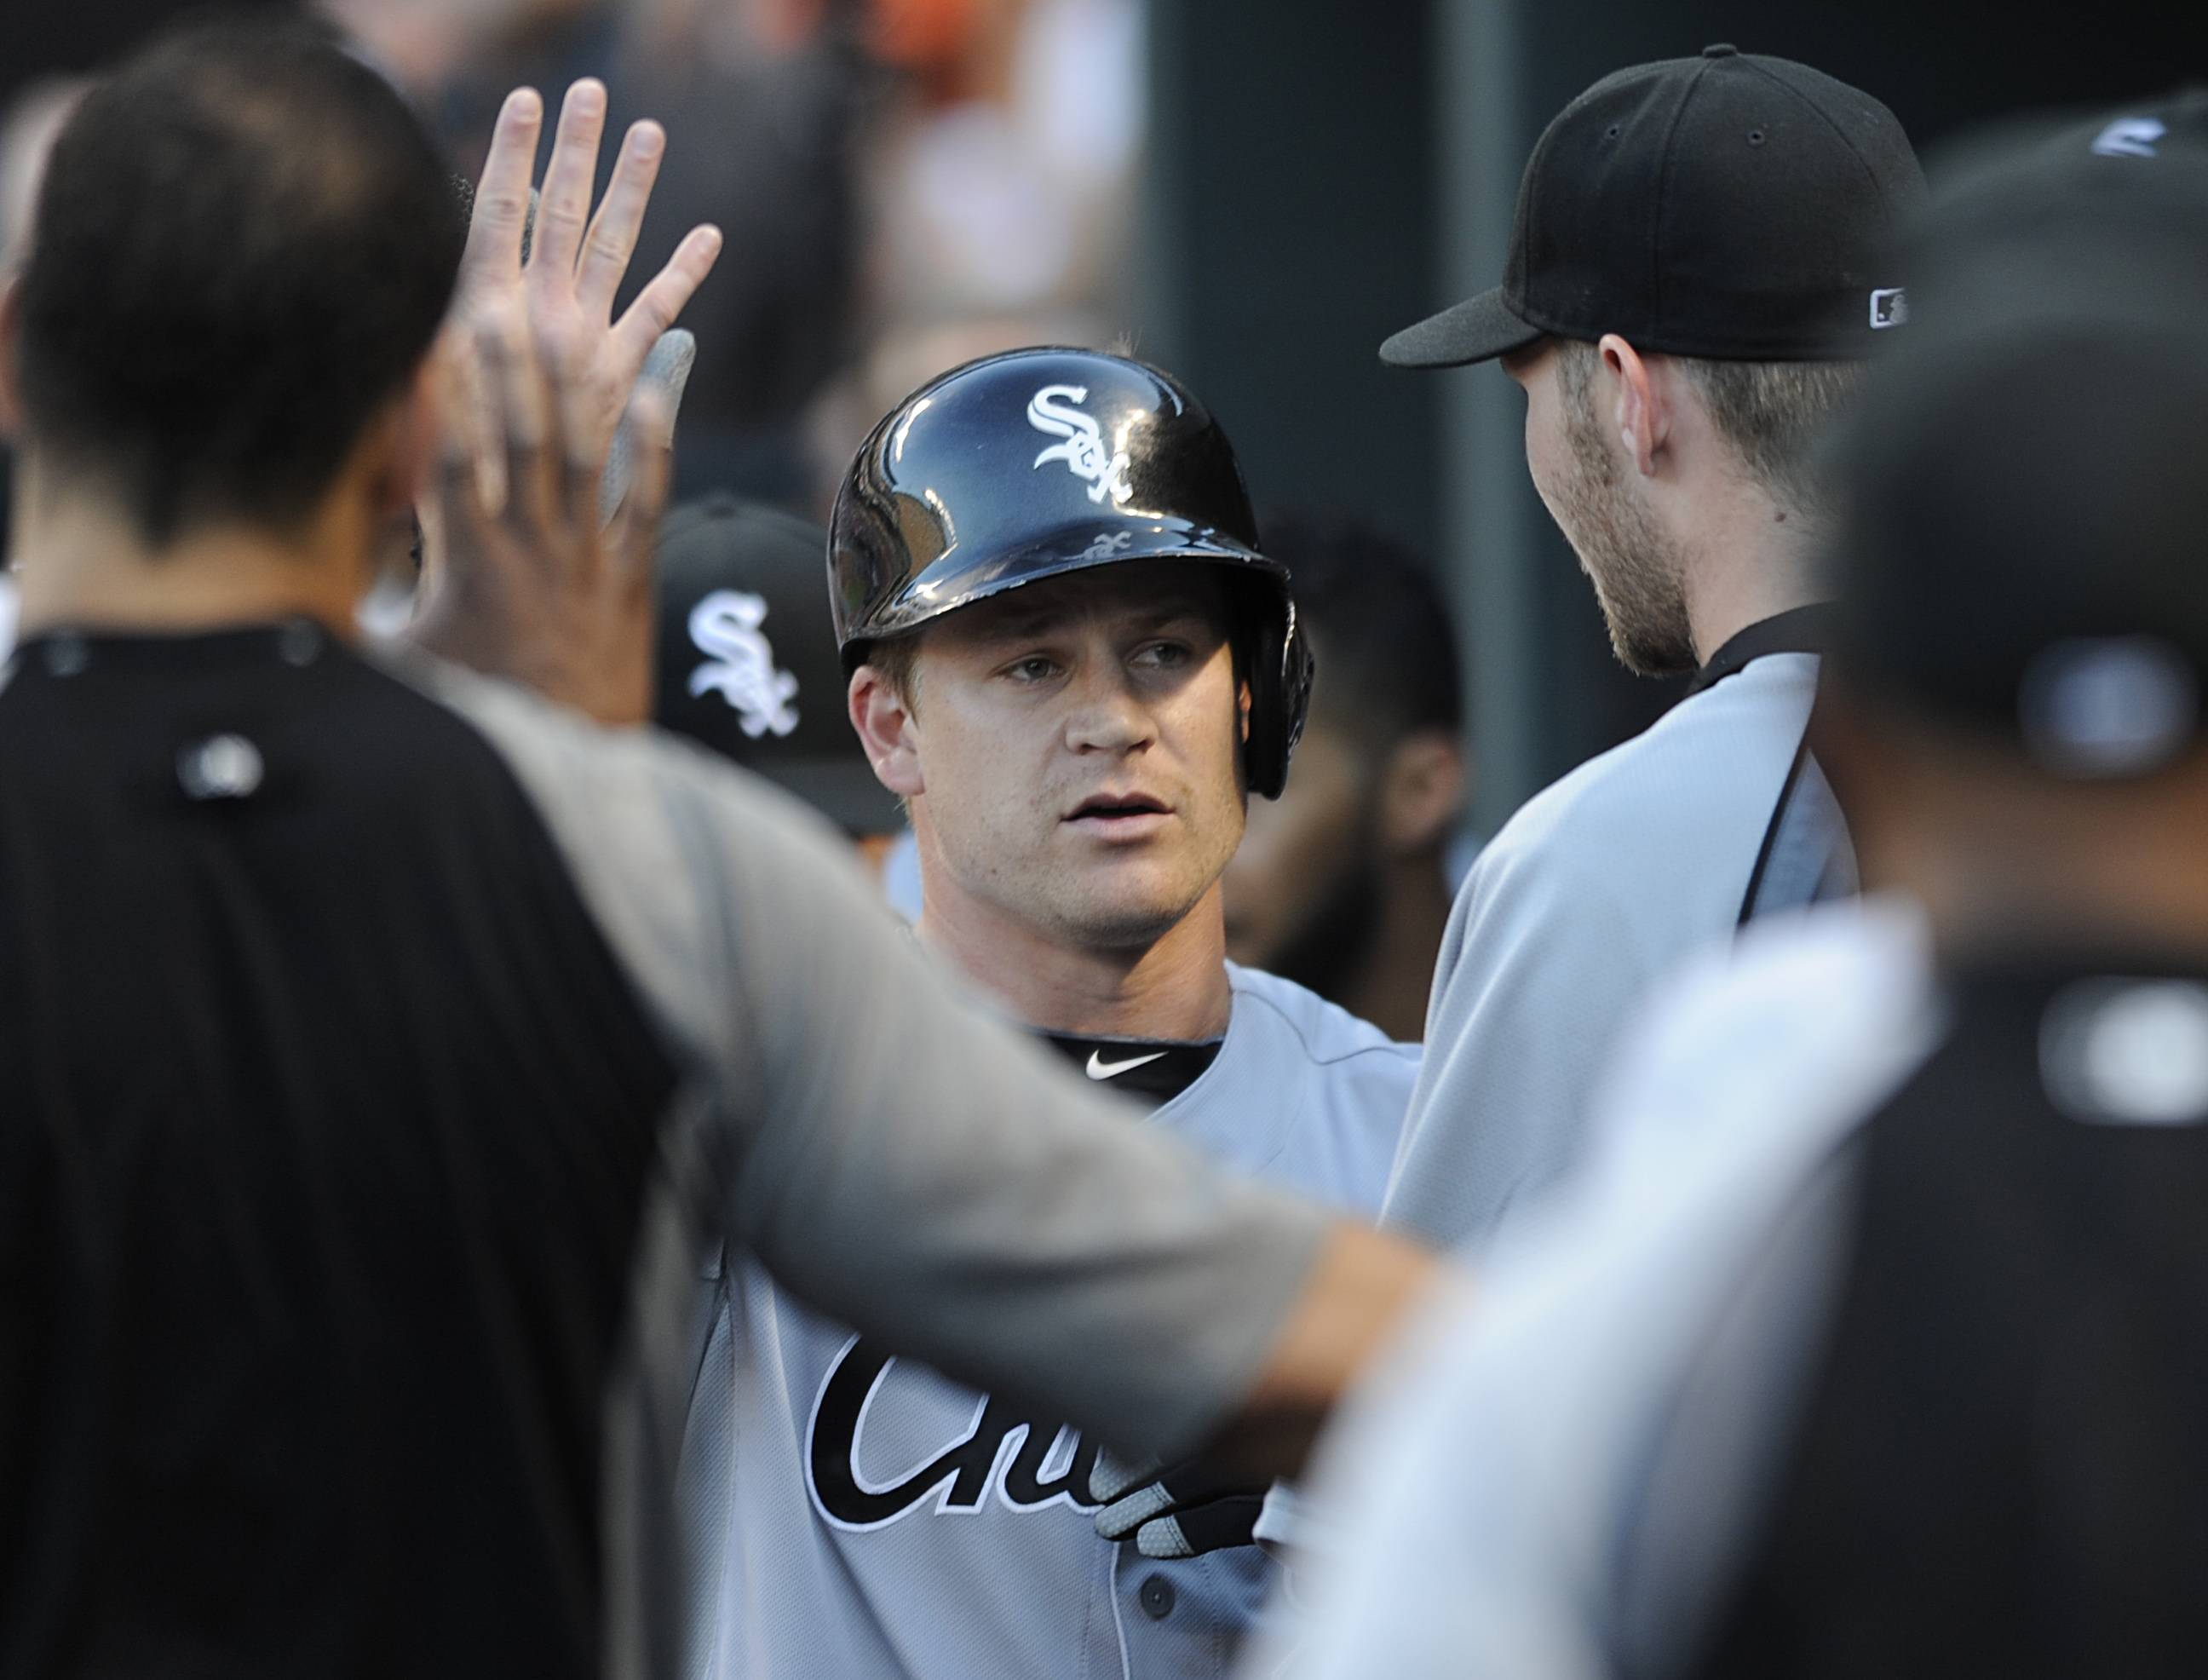 Chicago White Sox second baseman Gordan Beckham, center, is congratulated in the dugout after hitting a solo home run against the Baltimore Orioles in the first inning of a baseball game, Tuesday, June 24, 2014, in Baltimore. (AP Photo/Gail Burton)